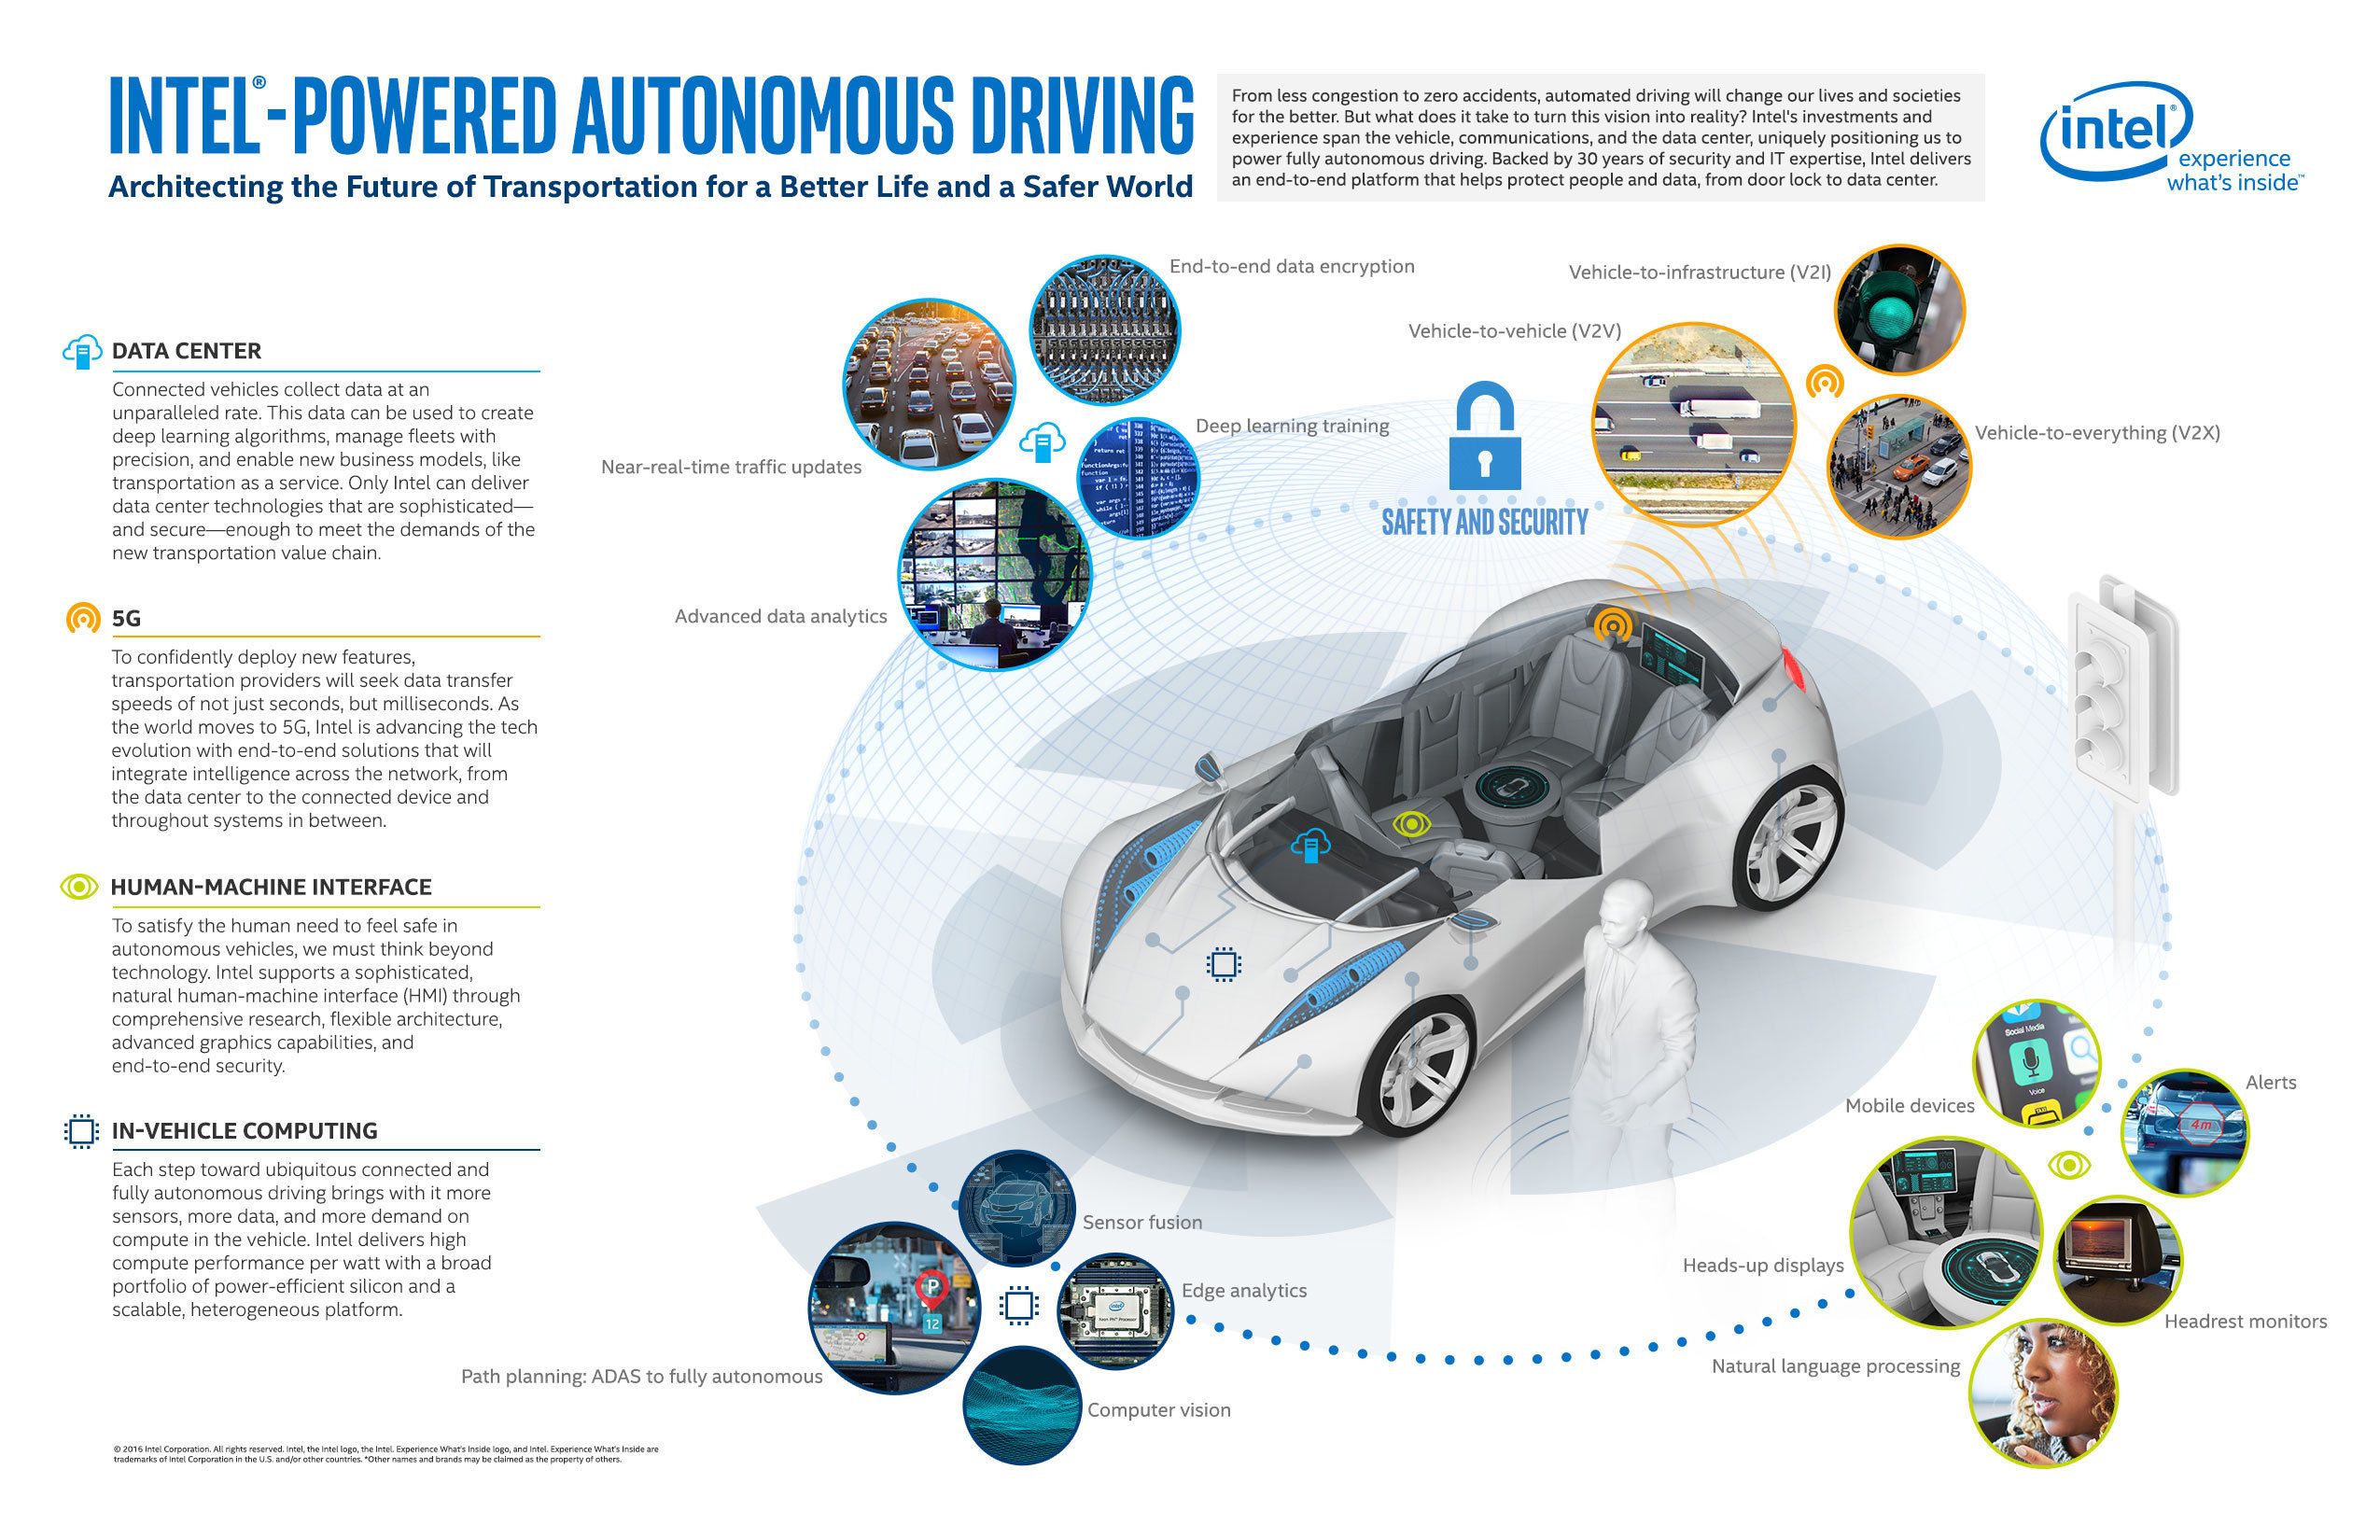 intel-powered-autonomous-driving-infographic.jpg